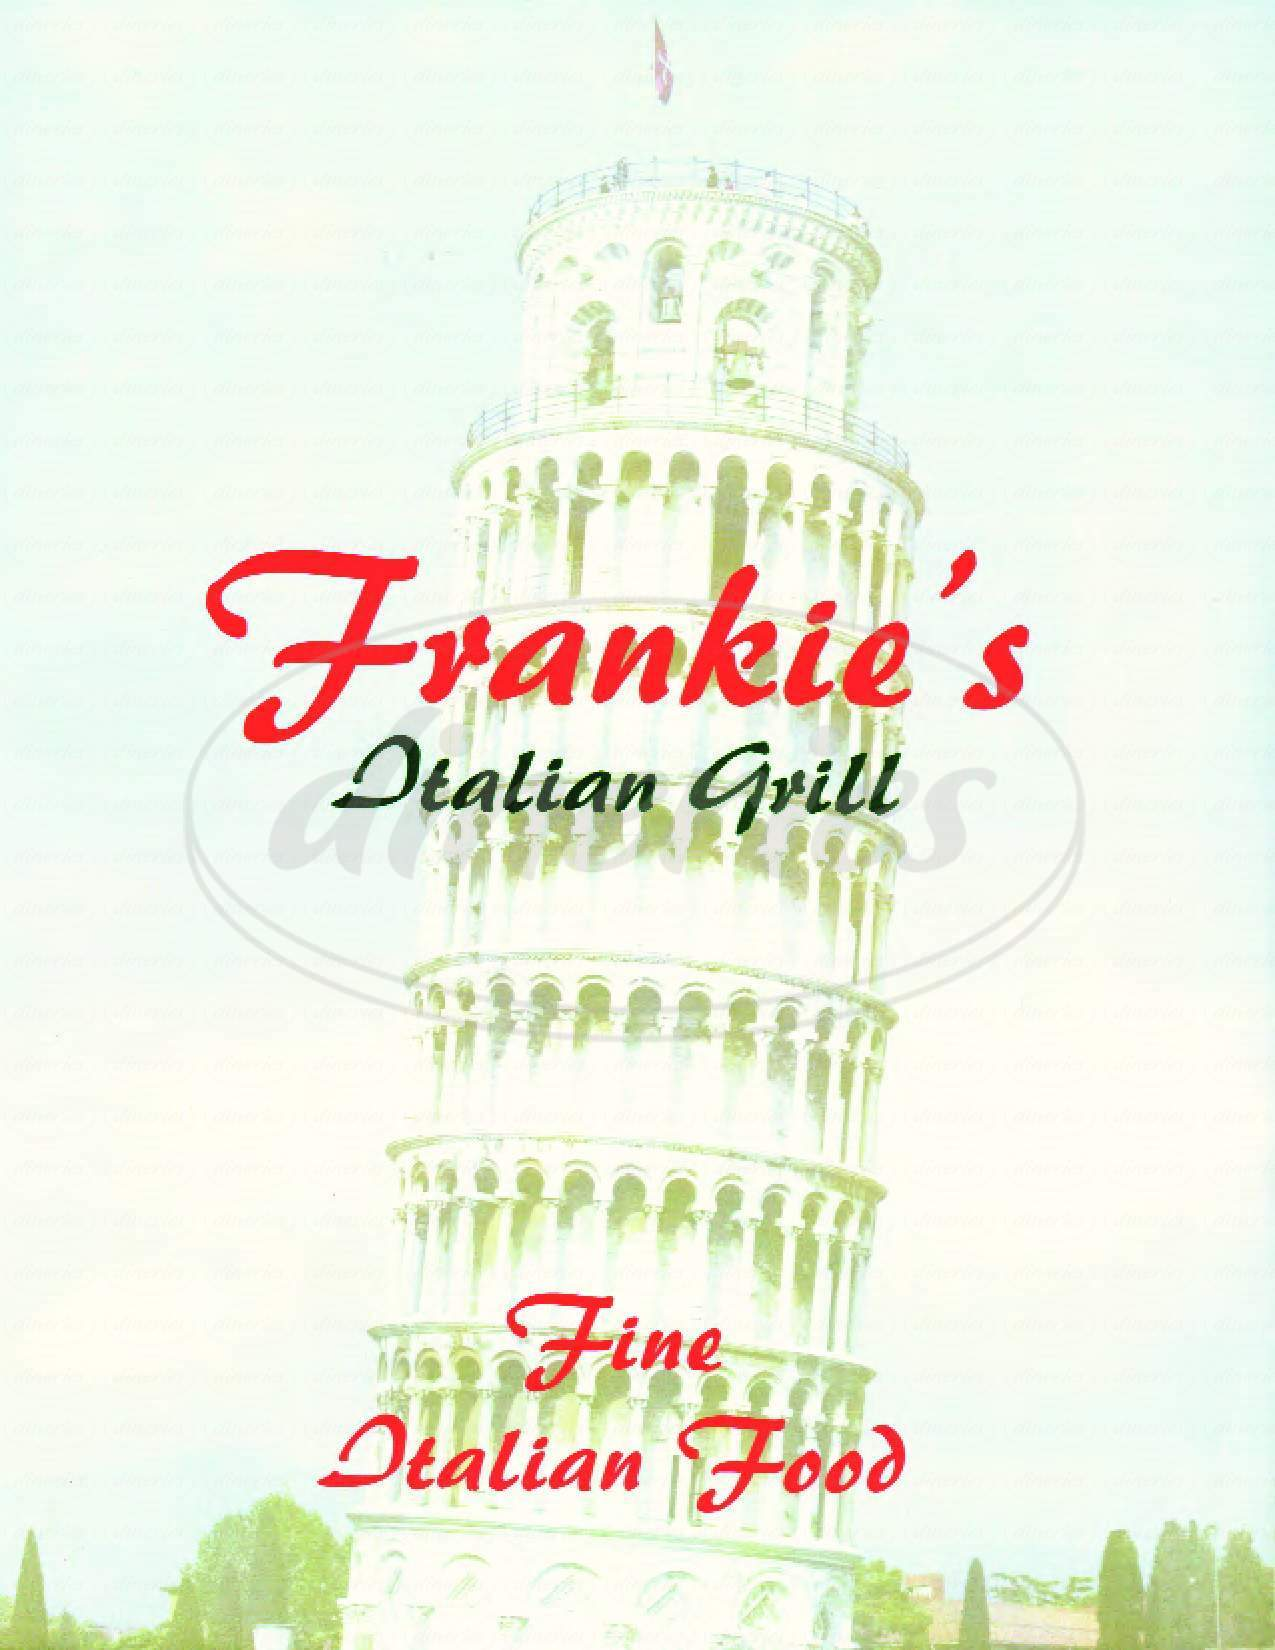 menu for Frankie's Italian Grill